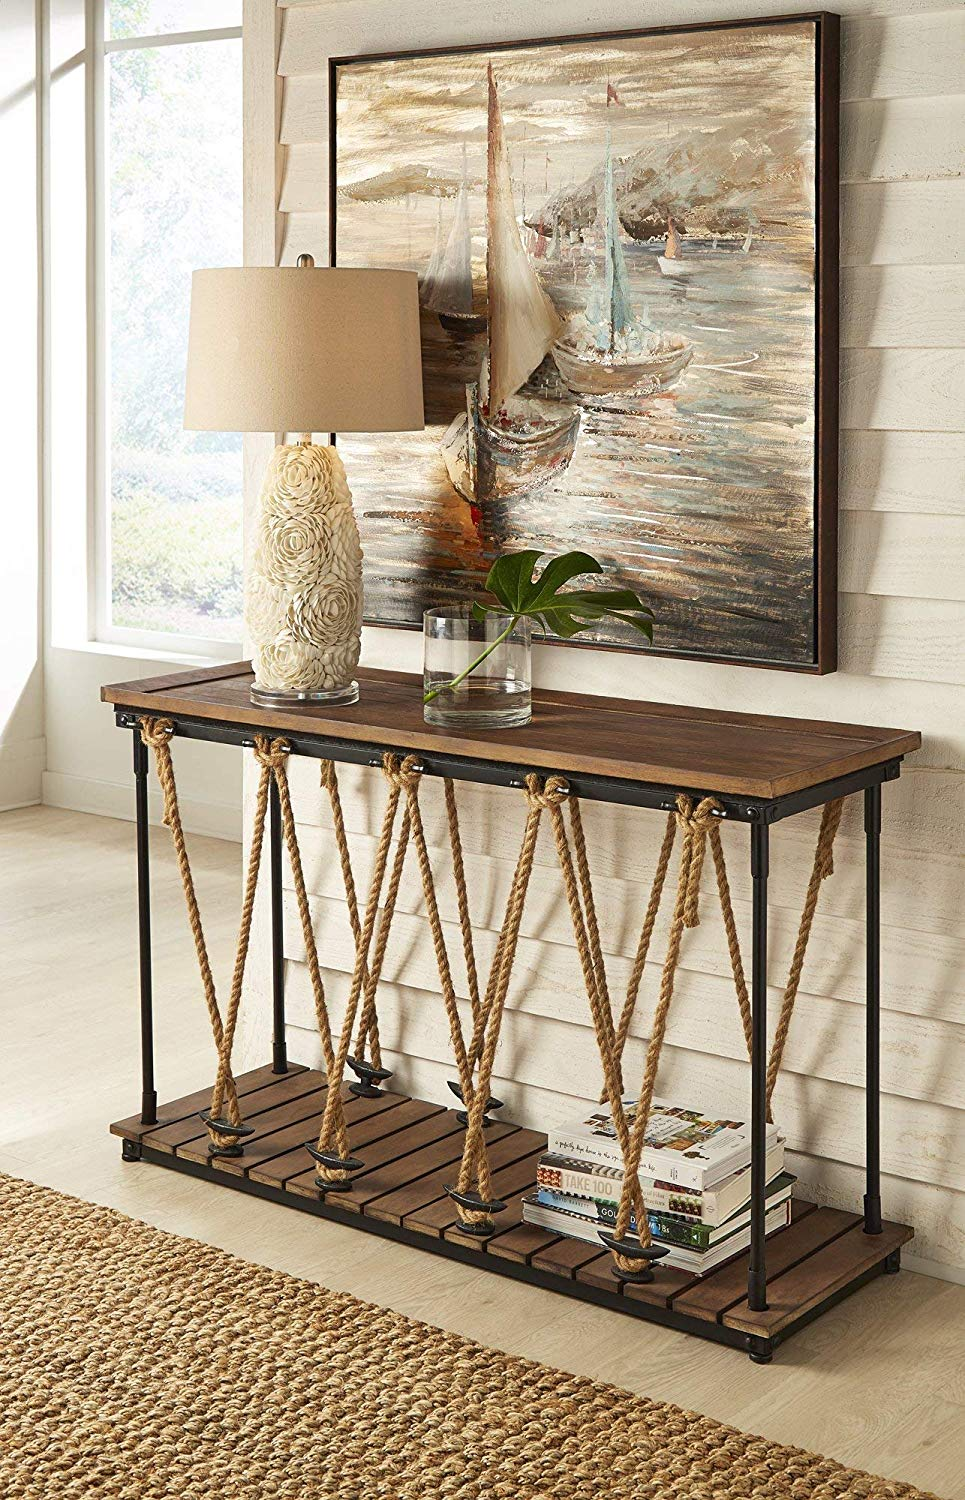 coastal-entryway-table-with-jute-rope-and-iron-hitches